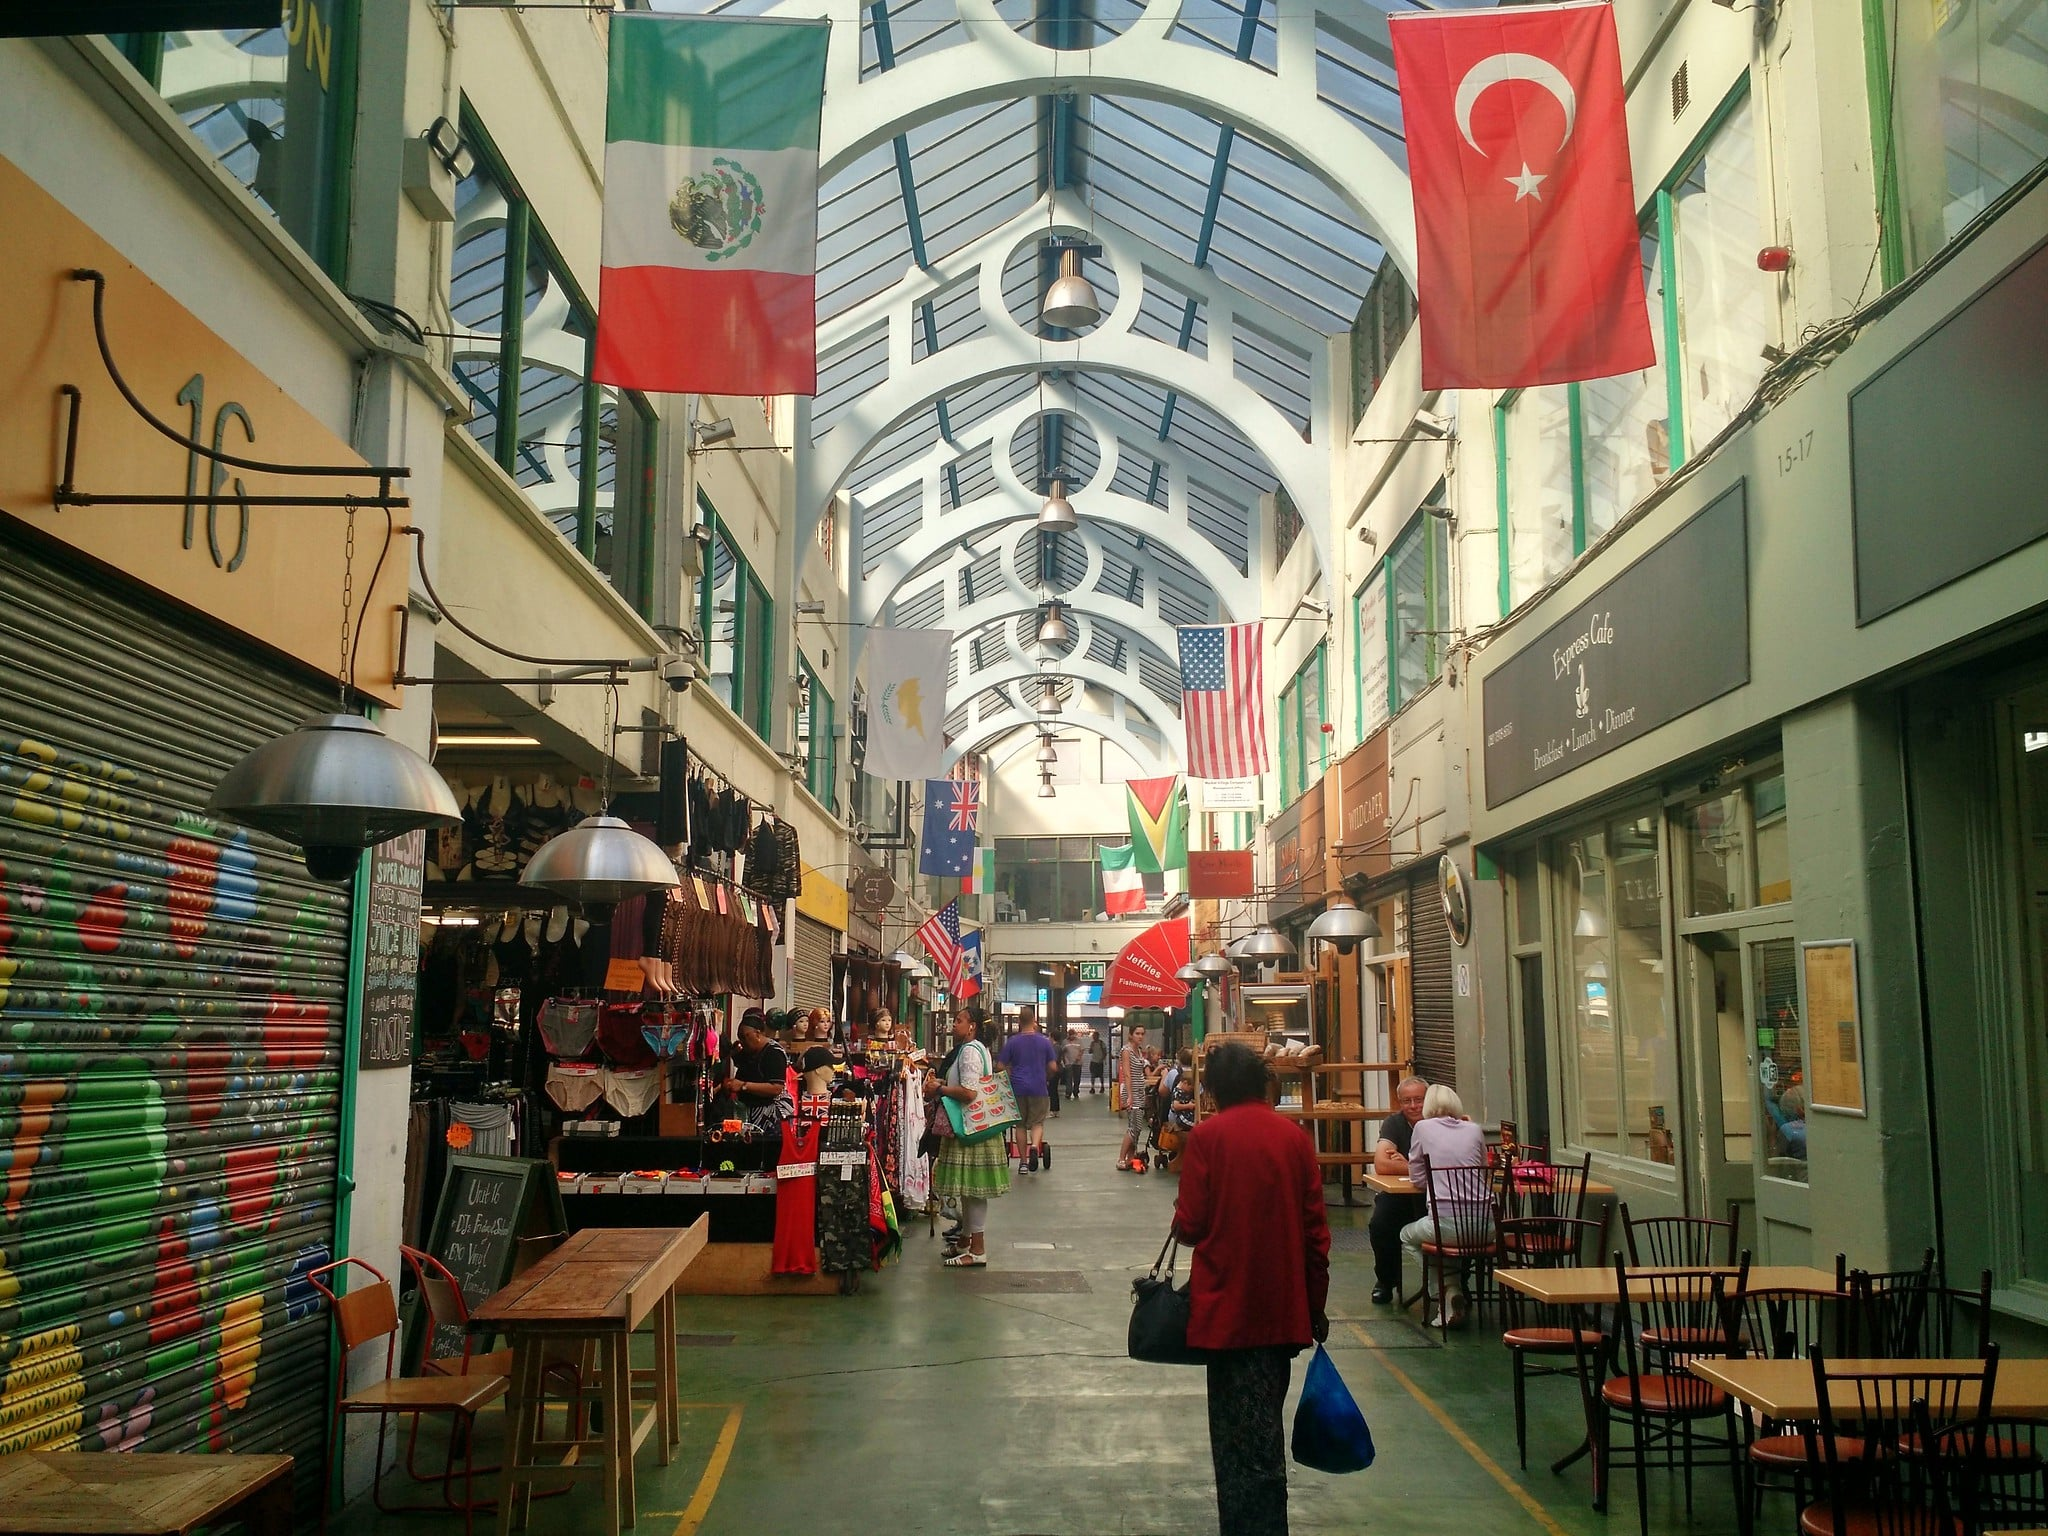 Brixton is where to stay in London for amazing international cuisine